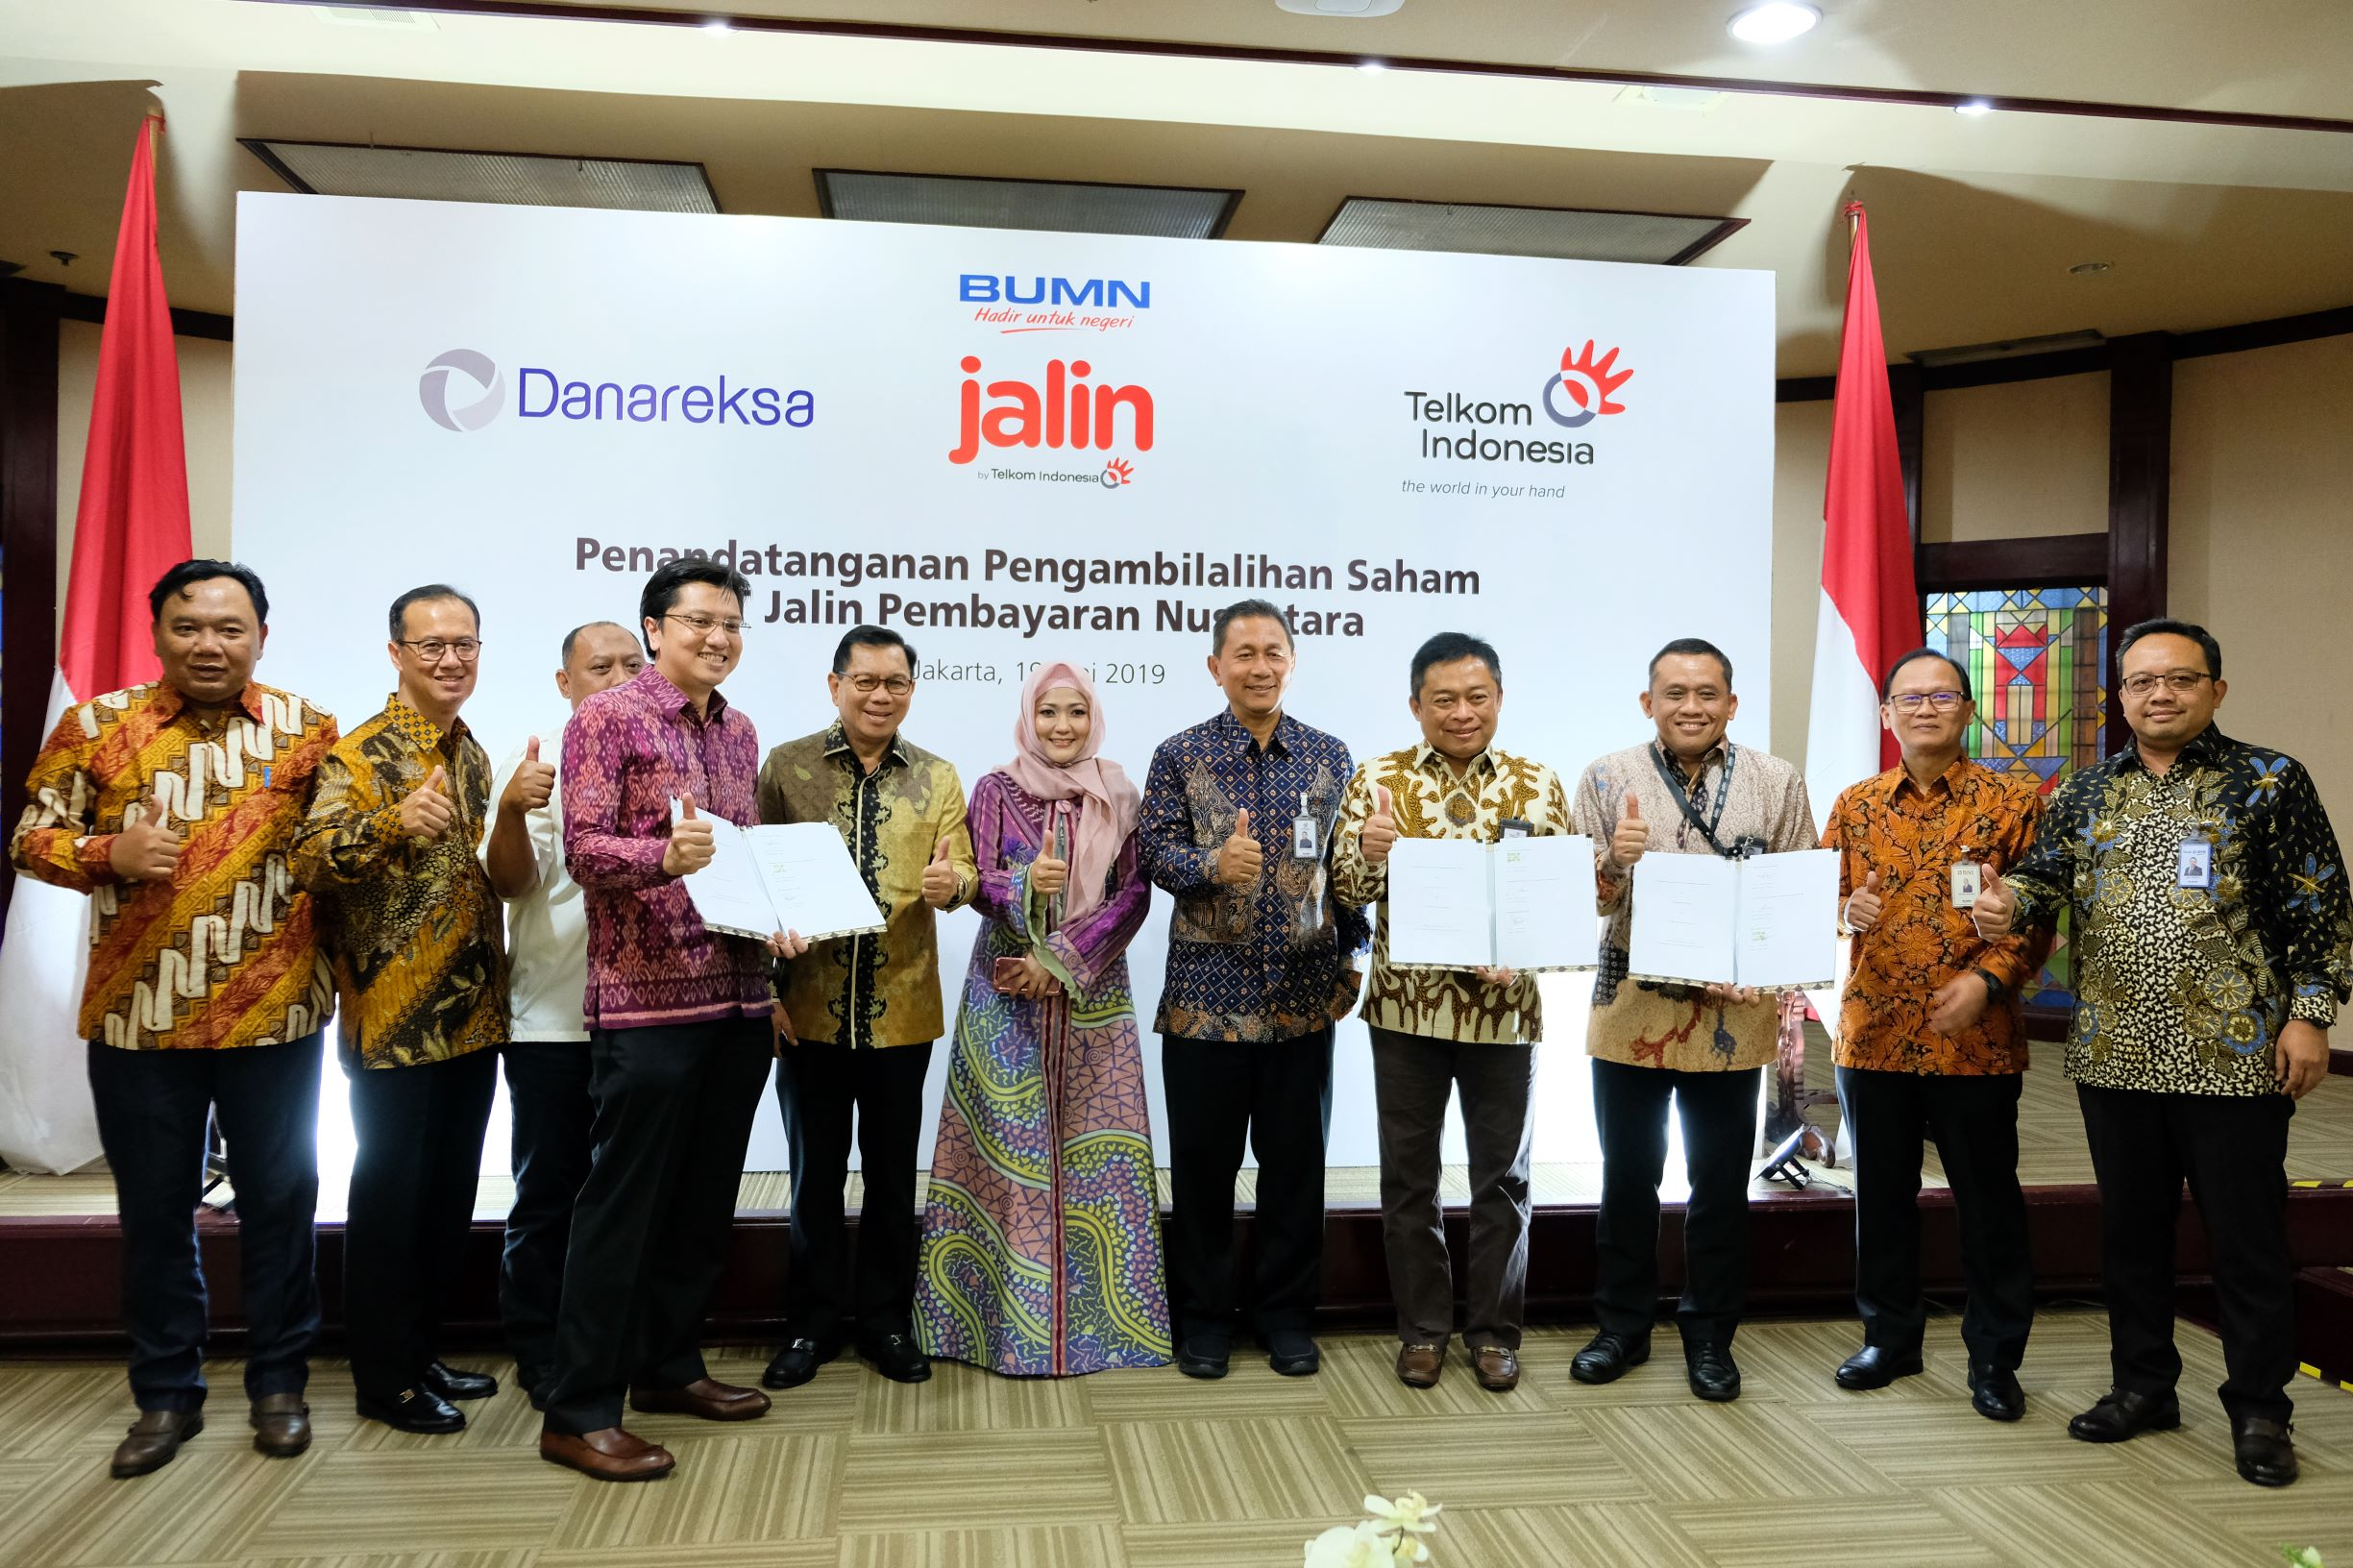 Danareksa Takeover Jalin Pembayaran Nusantara Majority Ownership